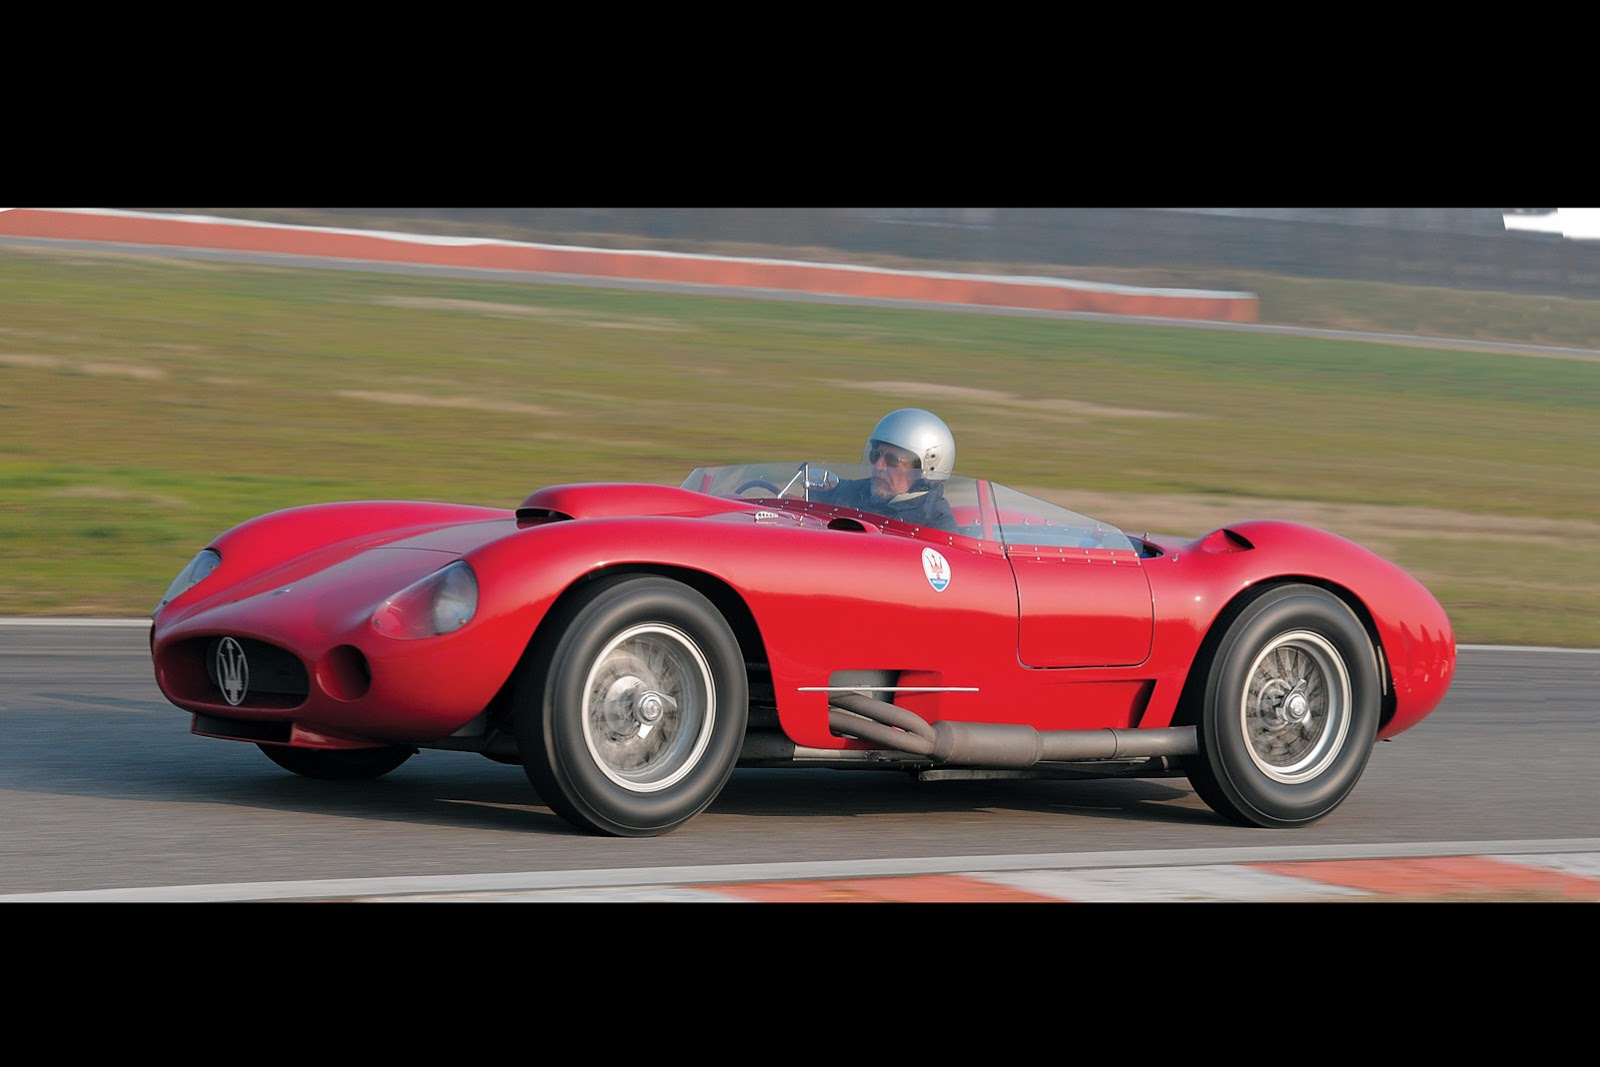 Maserati 350s Maserati 450s Driven By Stirling Moss In 1956 Mille Miglia Could